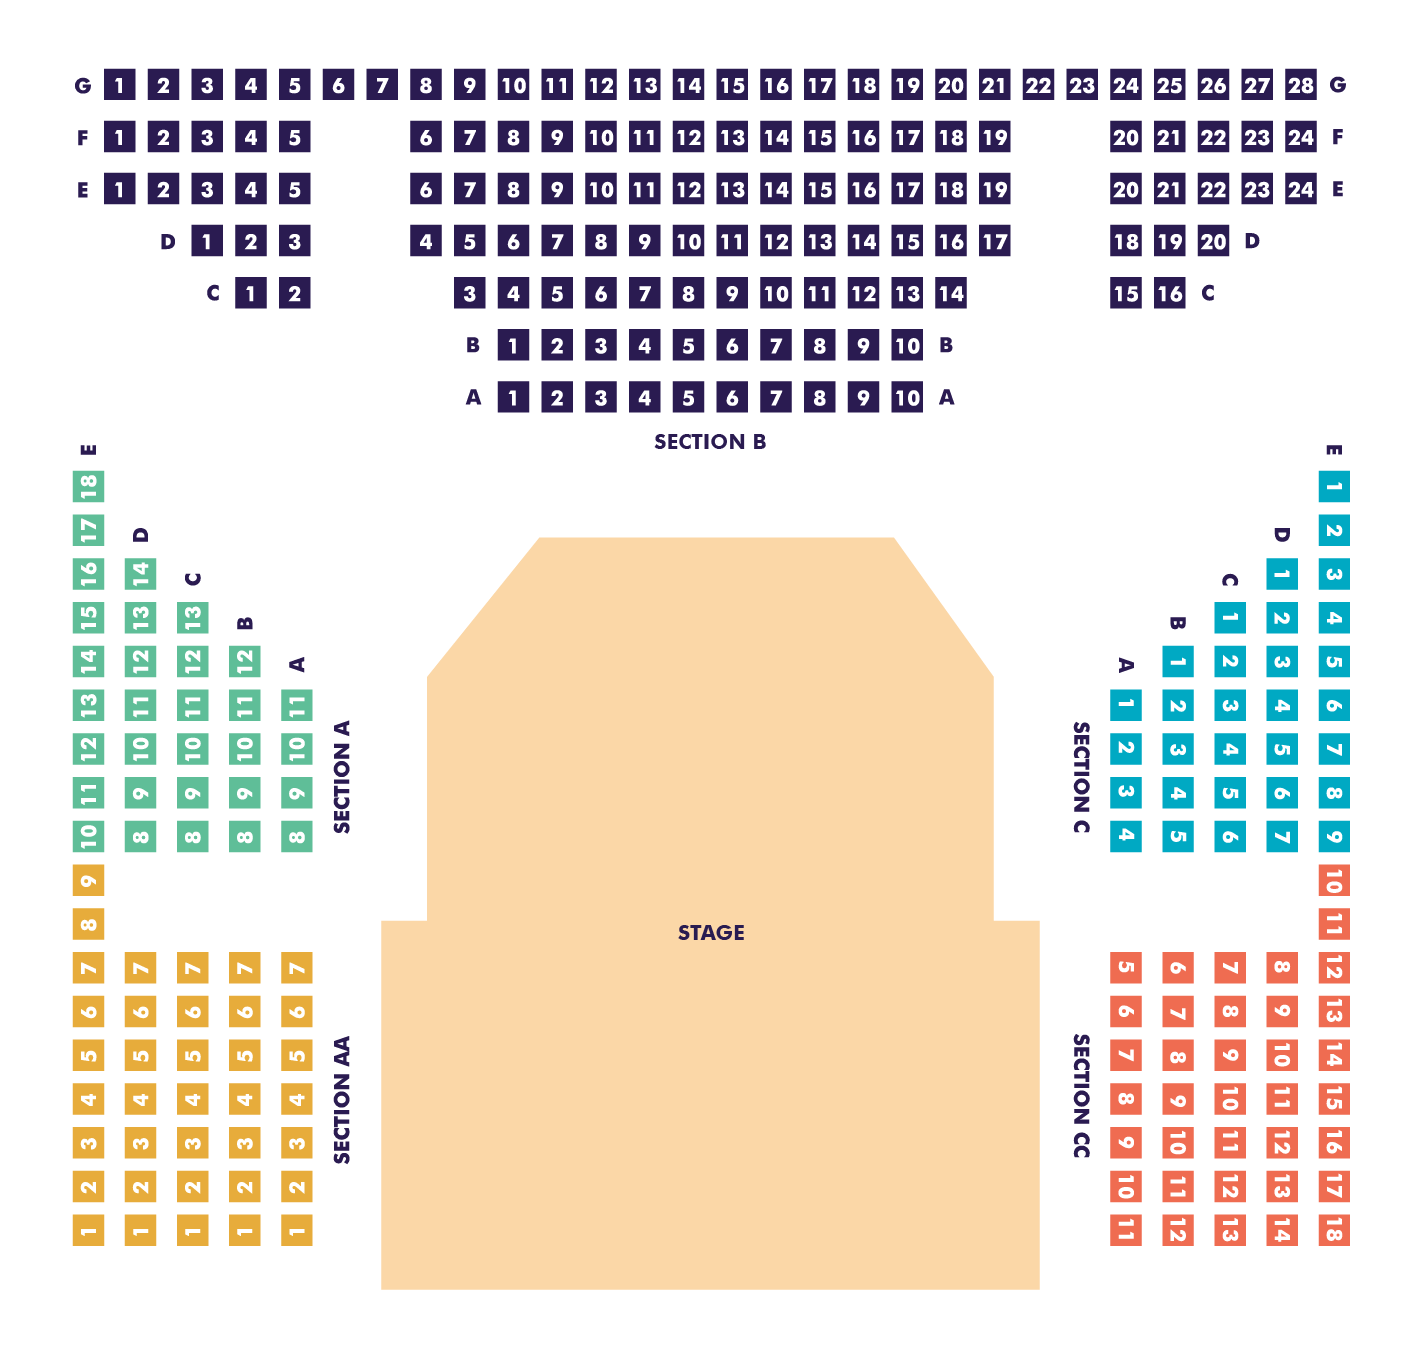 hippodrome theatre gainesville seating chart. Black Bedroom Furniture Sets. Home Design Ideas